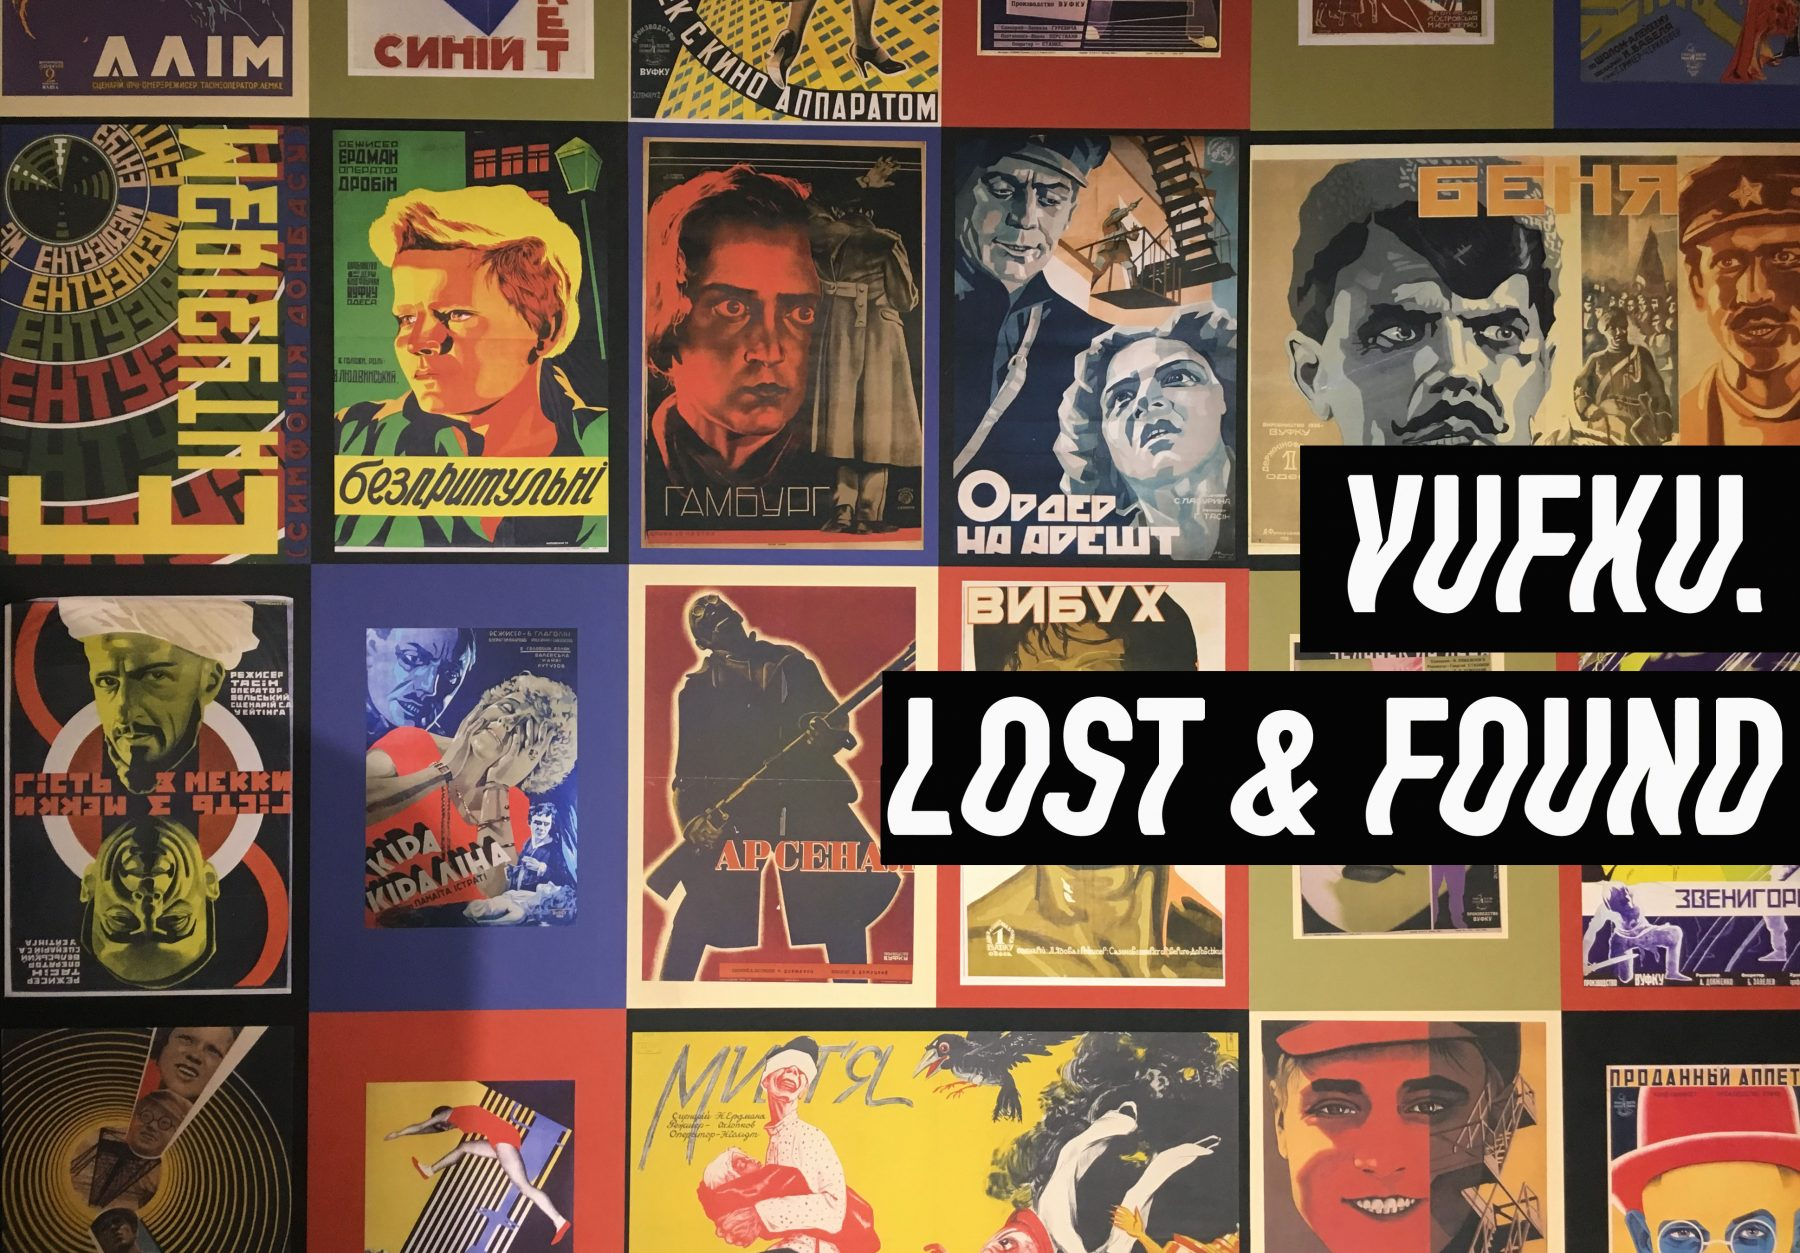 Vuvku. Lost & Found exhibition at Dovzhenko Center